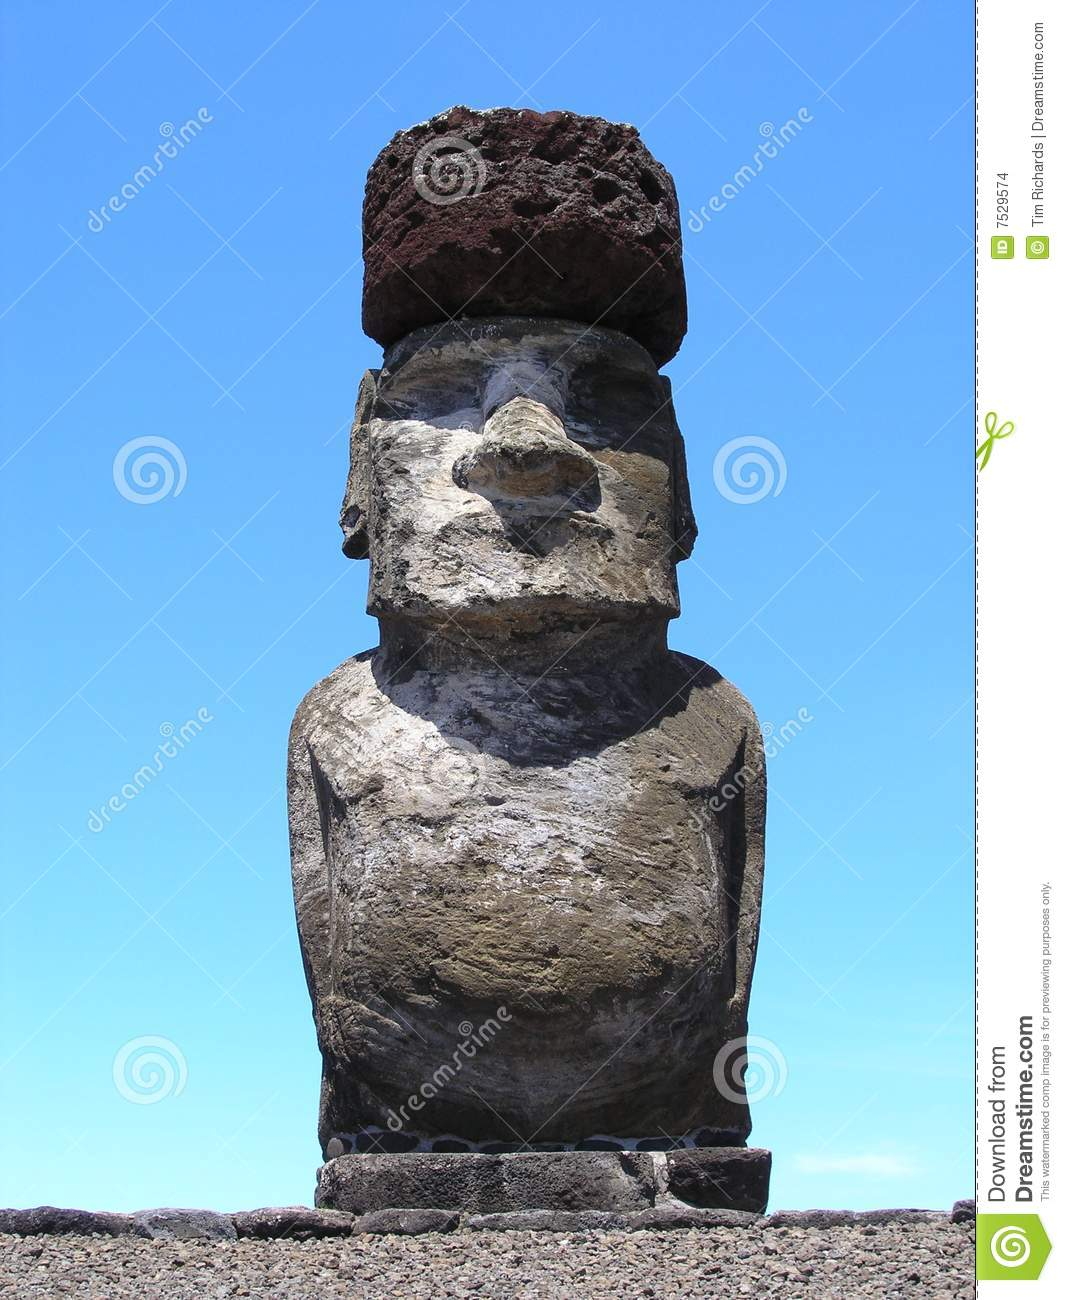 a review of the stone statues of easter island Easter island's silent sentinels: the sculpture and architecture of rapa nui  is  the first to examine in detail the island's vernacular architecture, often  overshadowed by its giant stone statues  colonial latin american historical  review.